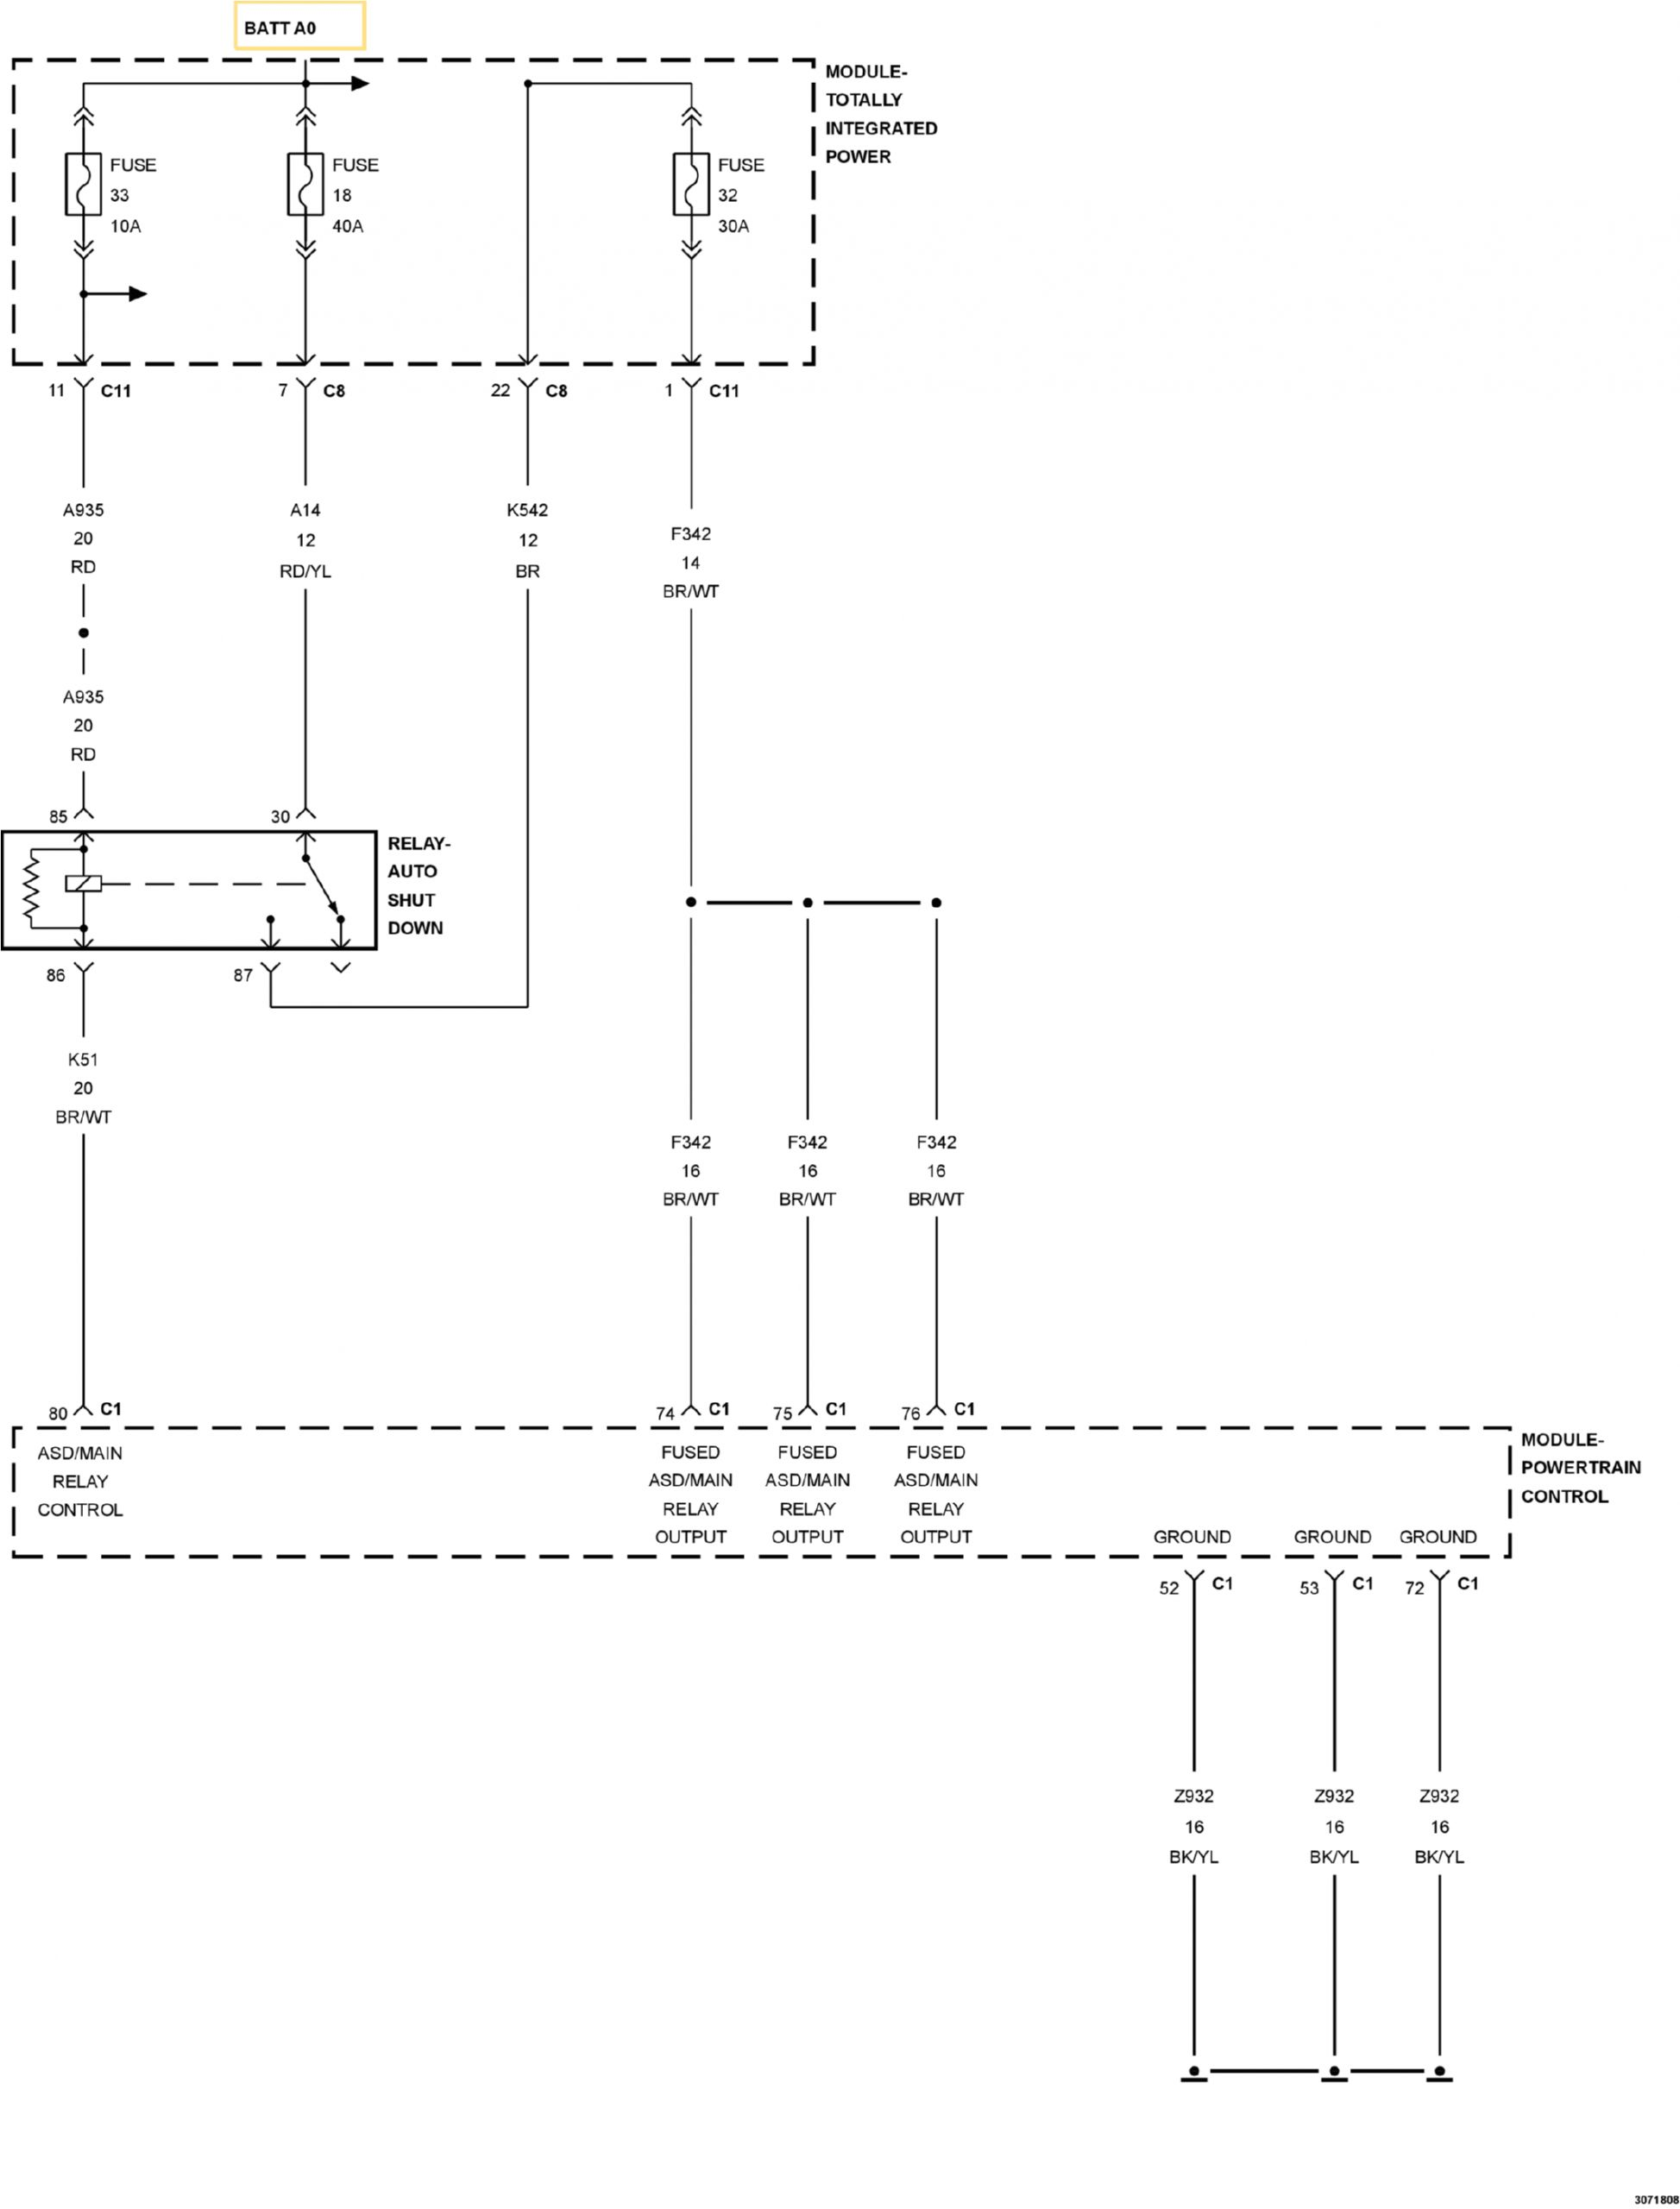 2011 Jeep Patriot Wiring Diagram 88c4e 2011 Jeep Compass Electrical Wiring Schematic Wiring